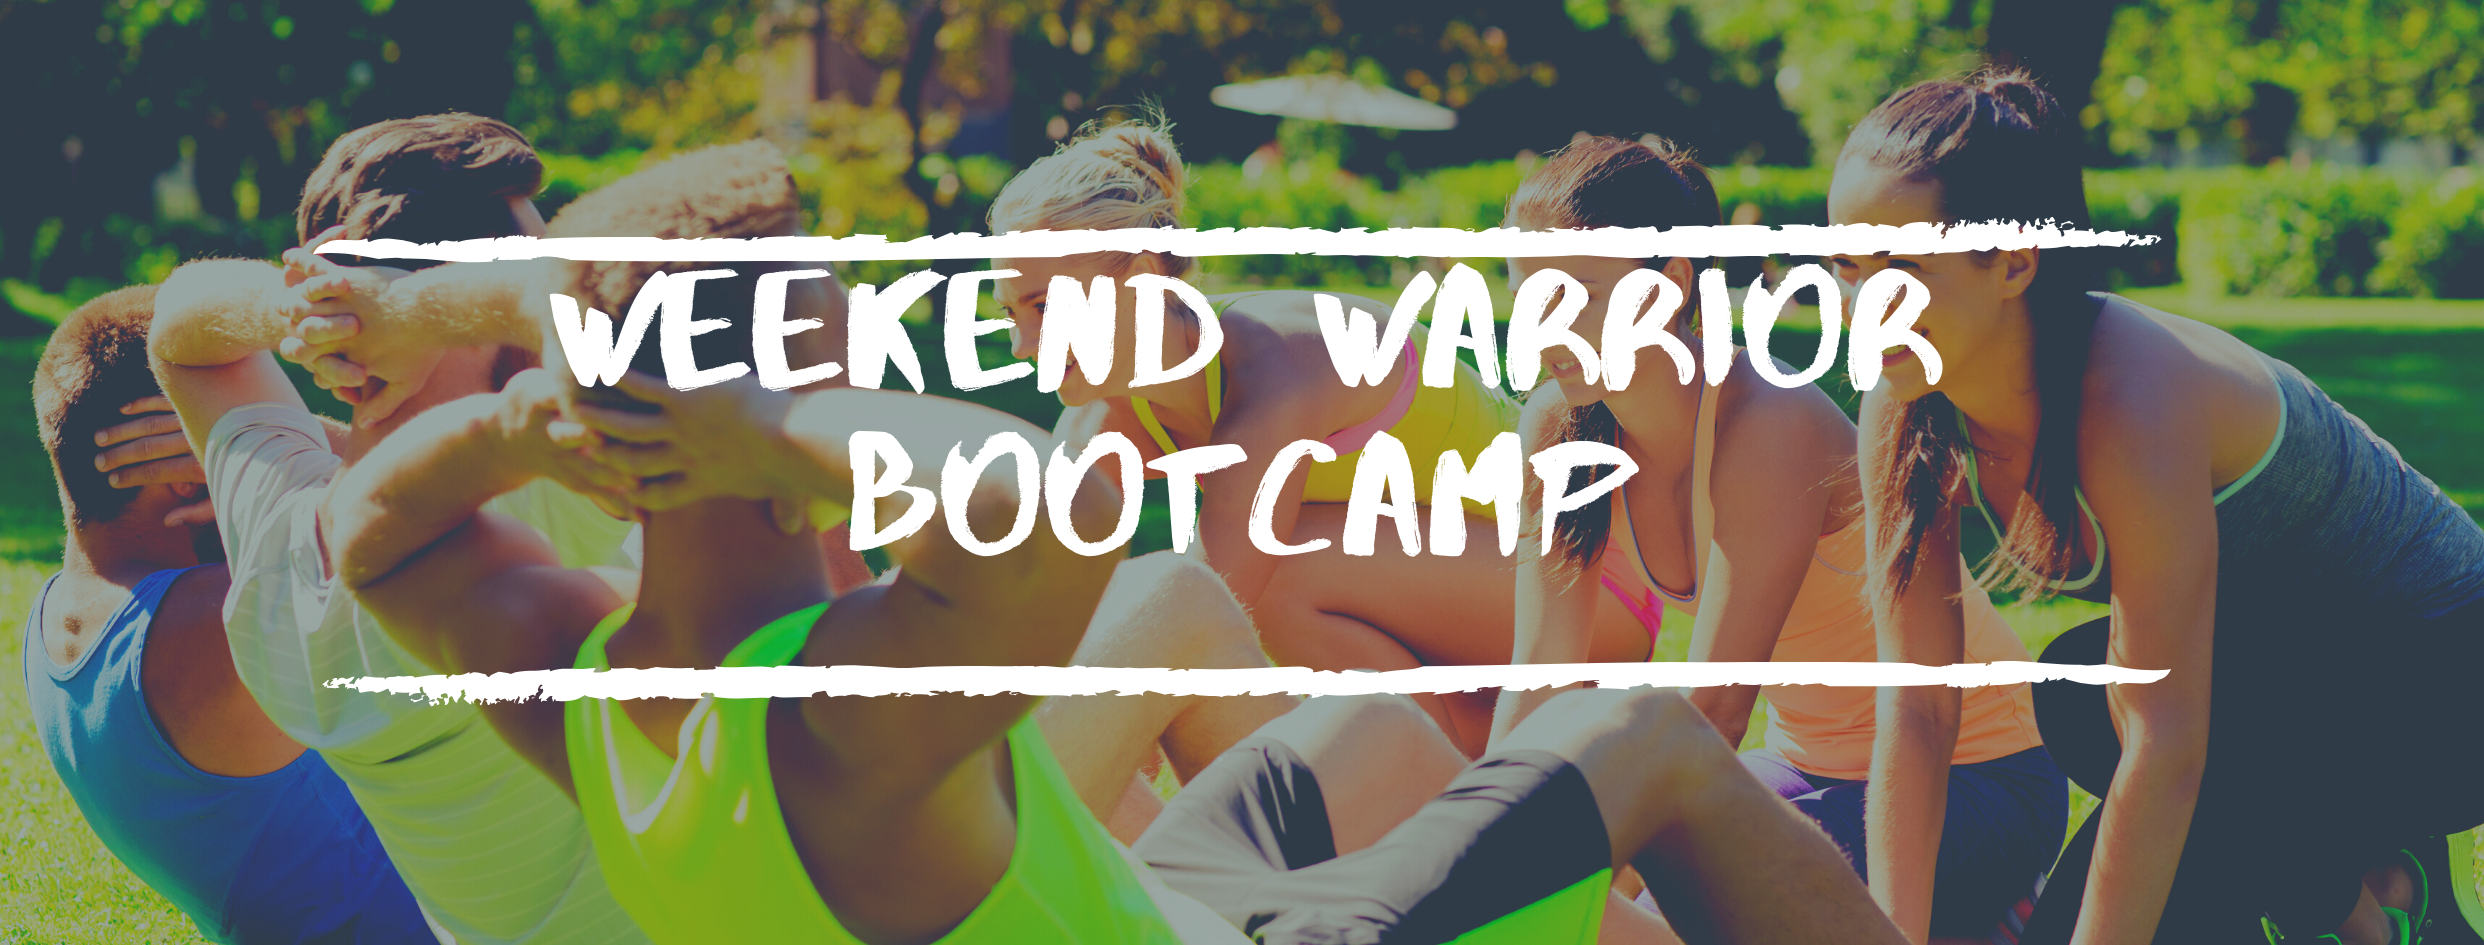 Weekend Warrior Bootcamp commencing 13 February 2021